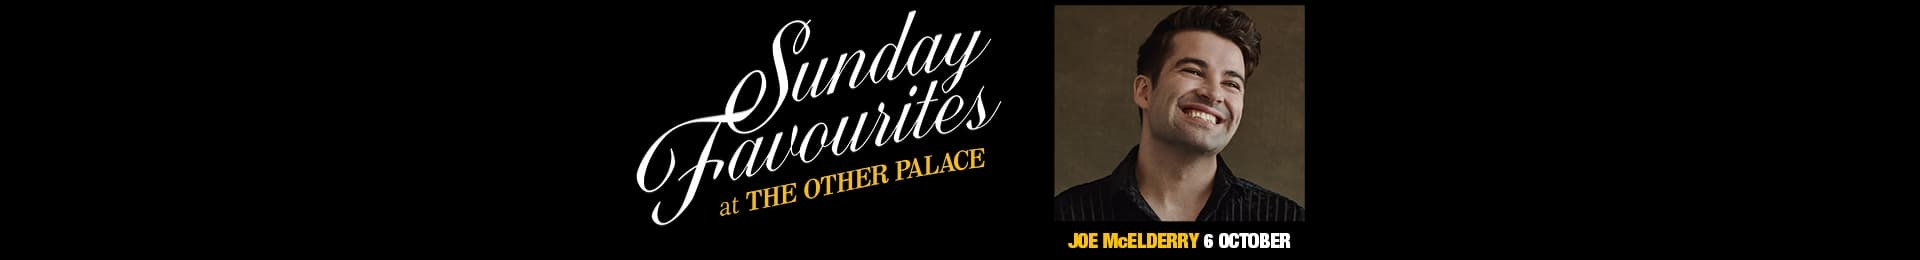 Sunday Favourites: Joe McElderry banner image